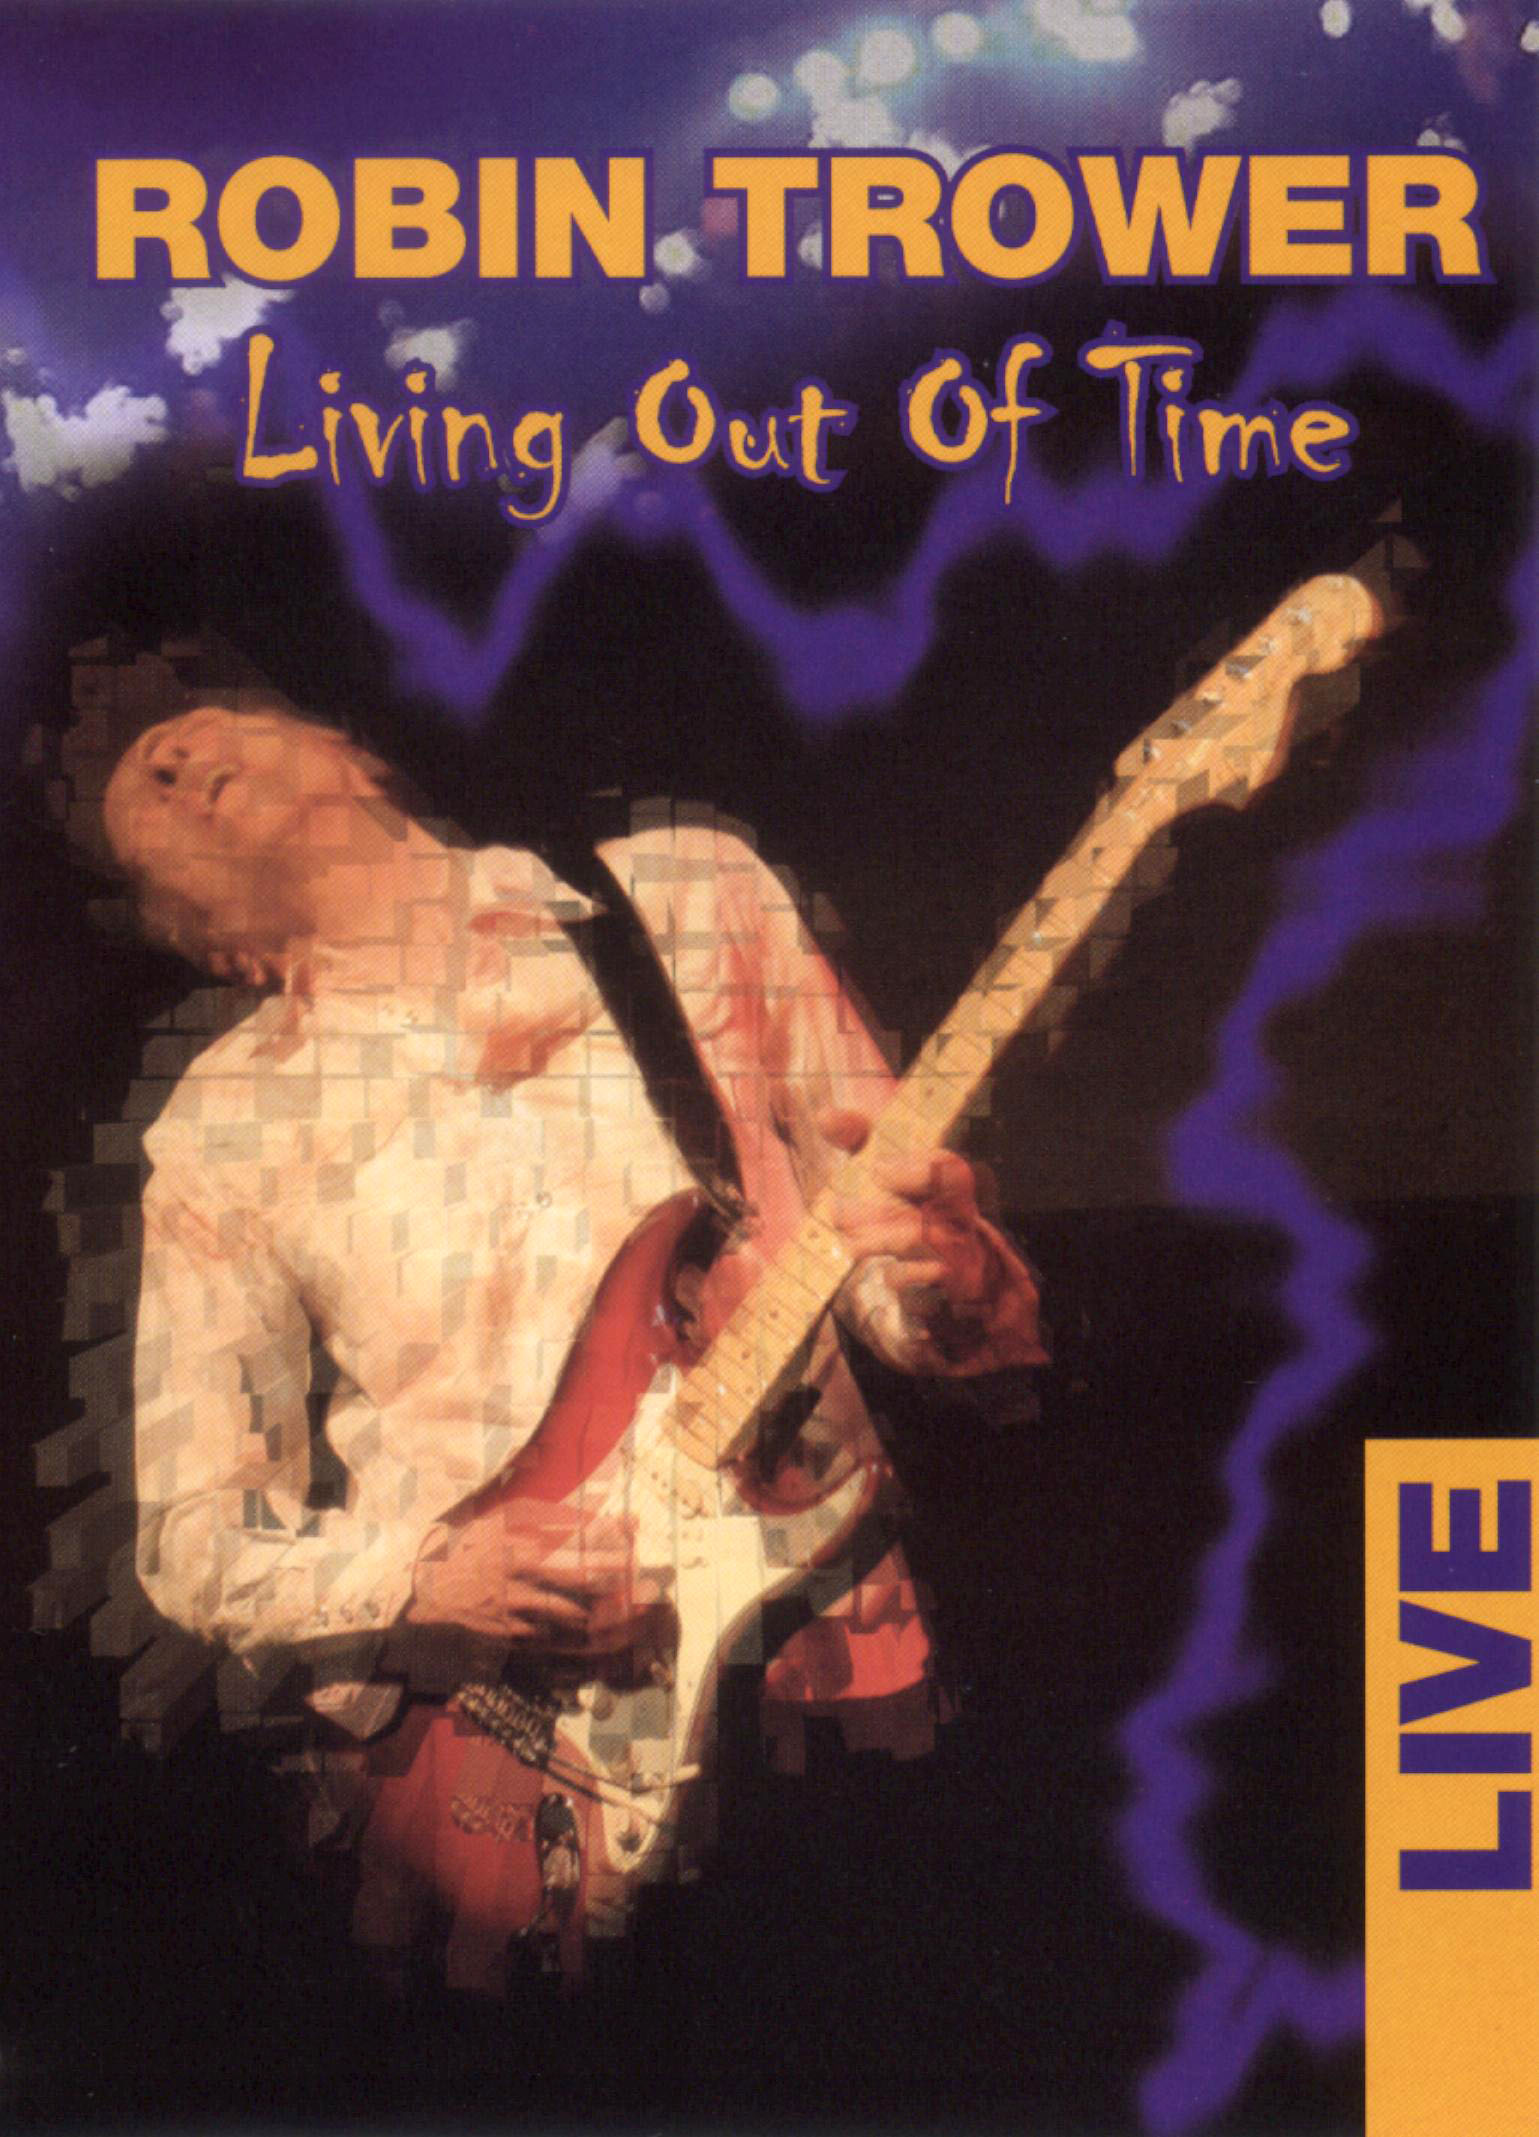 Robin Trower: Living Out of Time Live